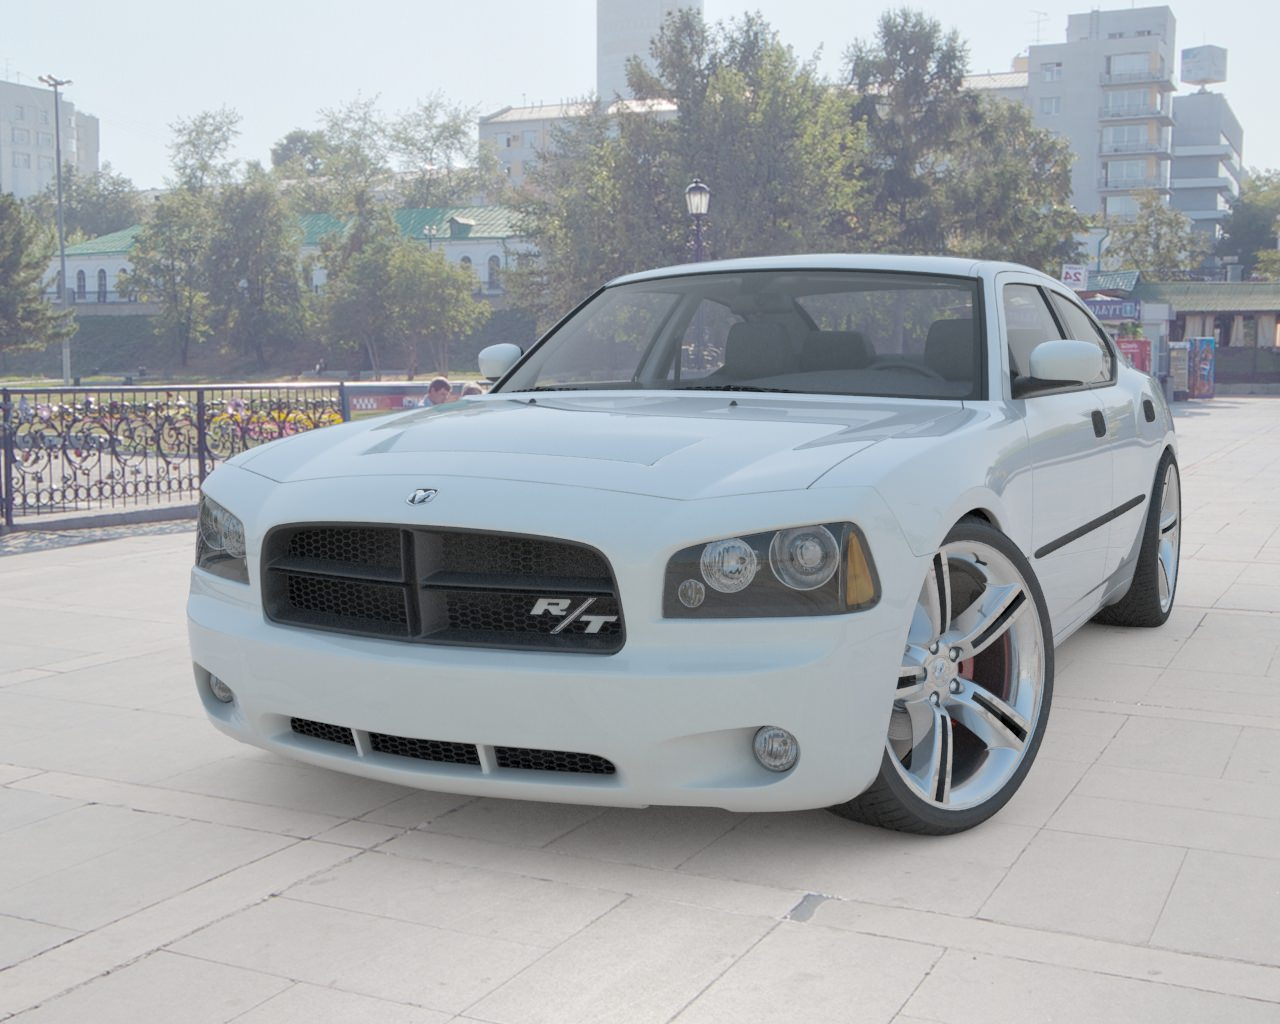 3d model dodge charger 2008 m-tech tuning hq model vr / ar / low